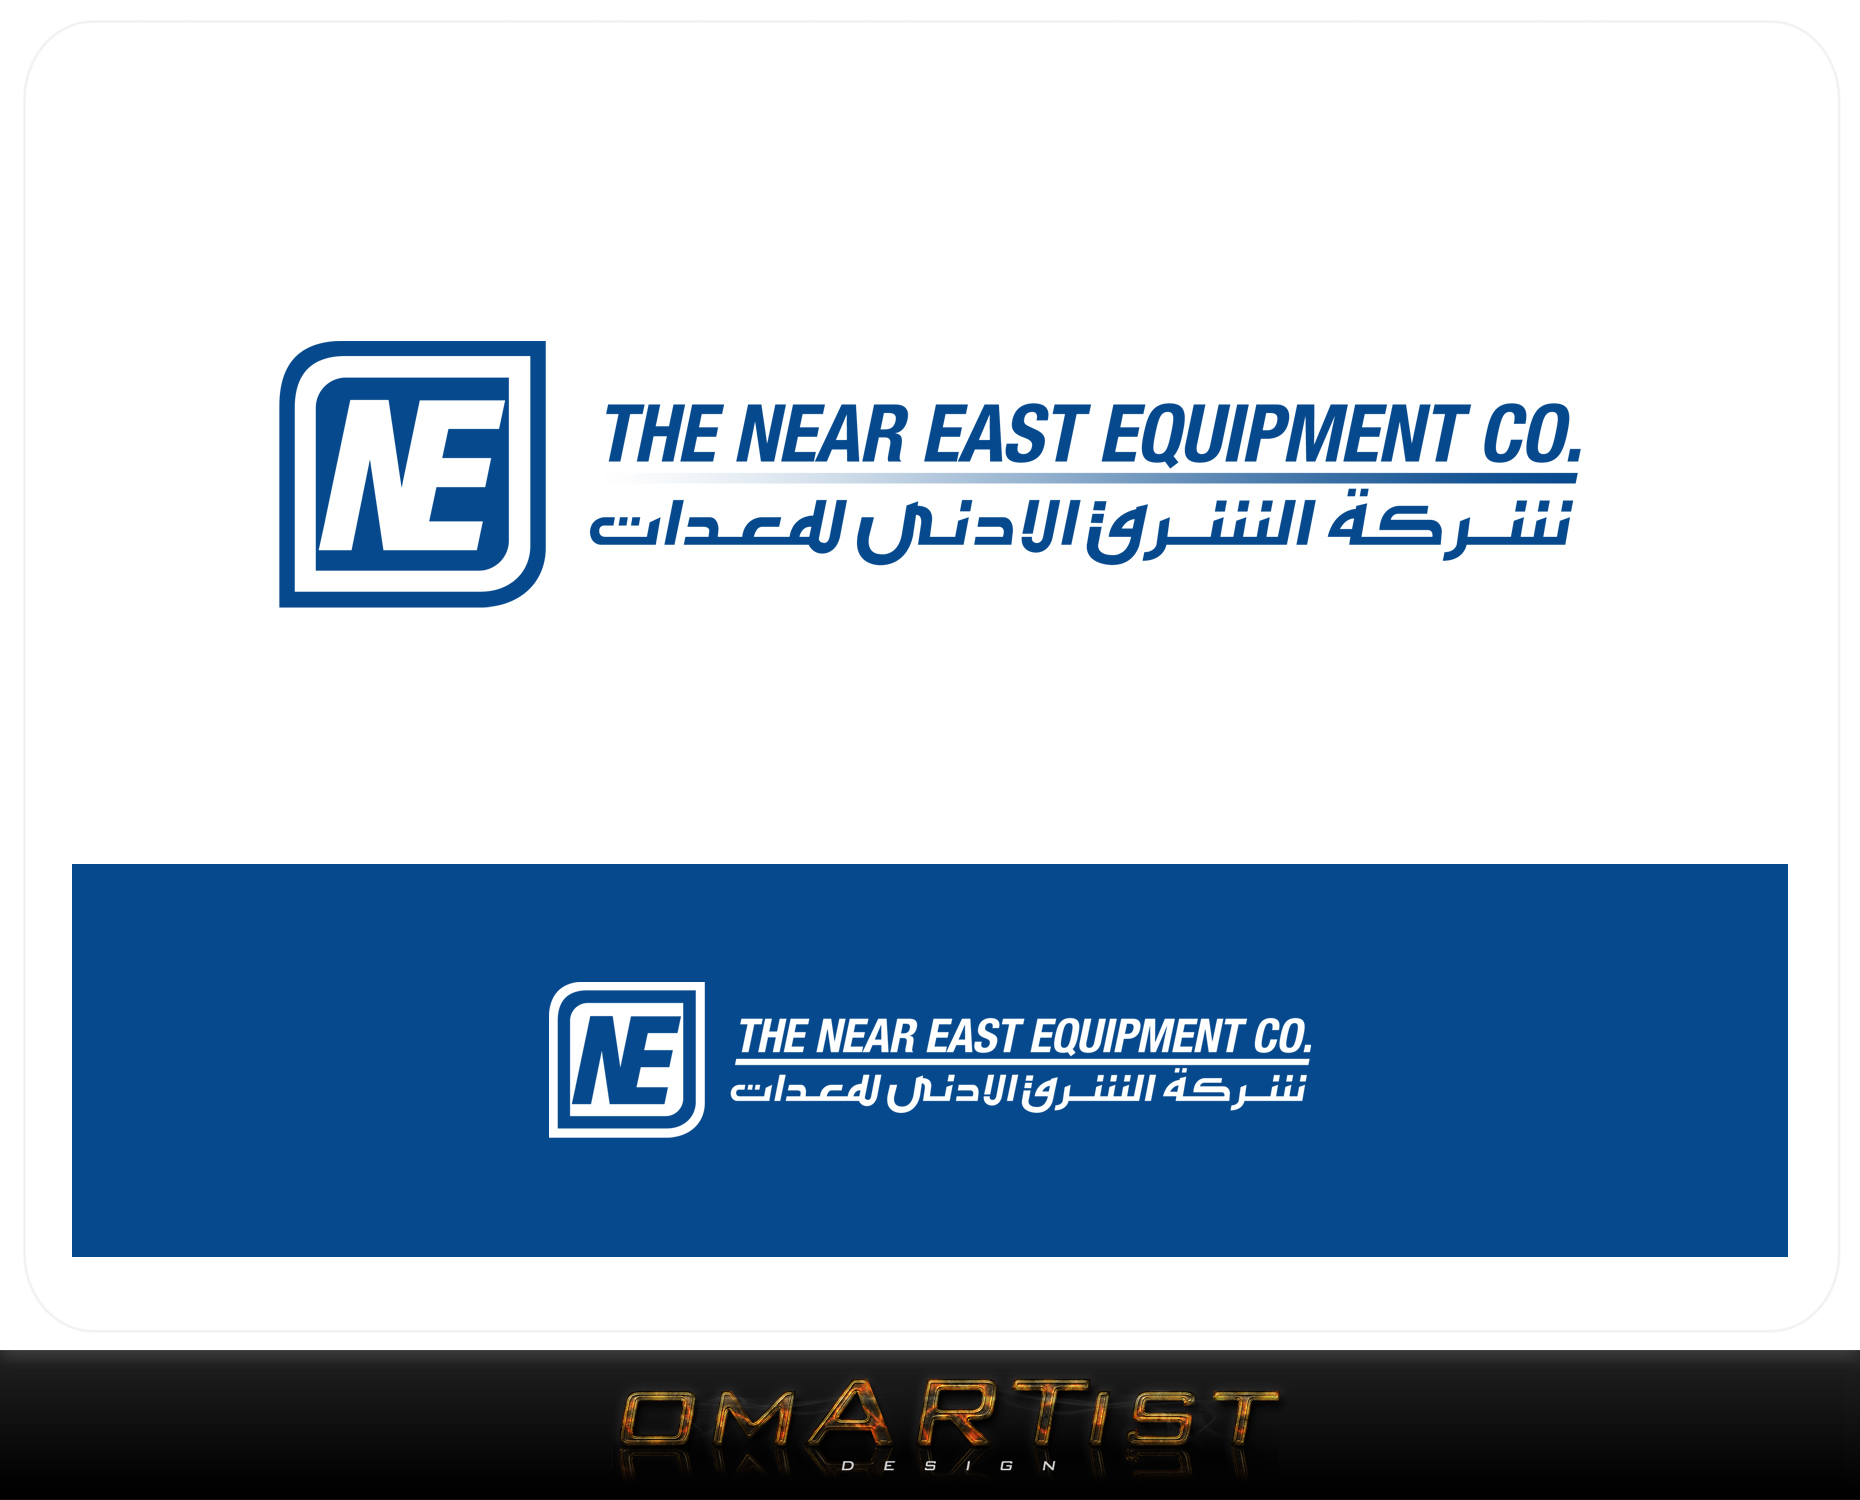 Logo Design by omARTist - Entry No. 176 in the Logo Design Contest Imaginative Logo Design for The Near East Equipment Co..